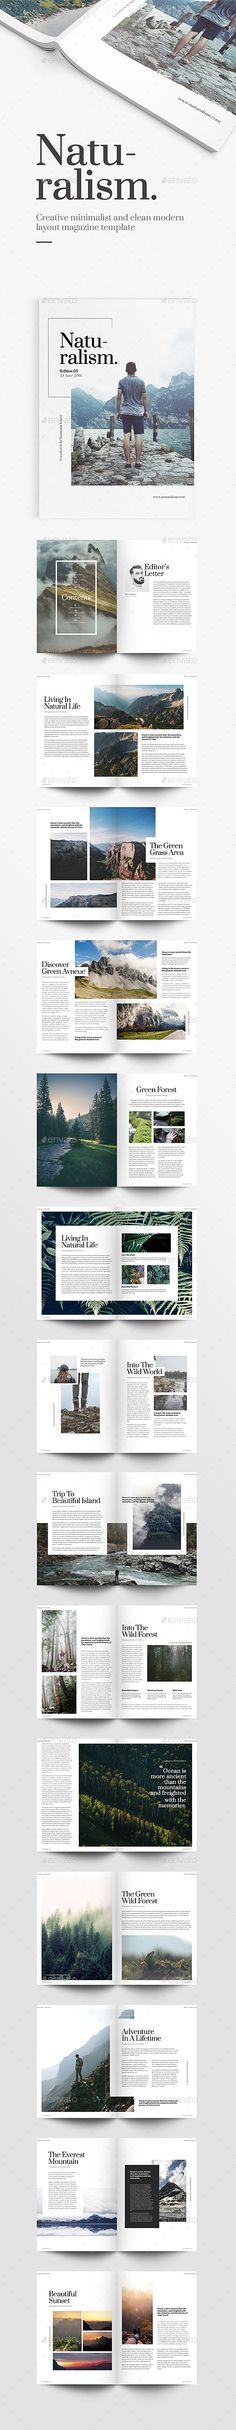 Brand Manual and Identity Template u2013 Corporate Design Brochure - how to manual template